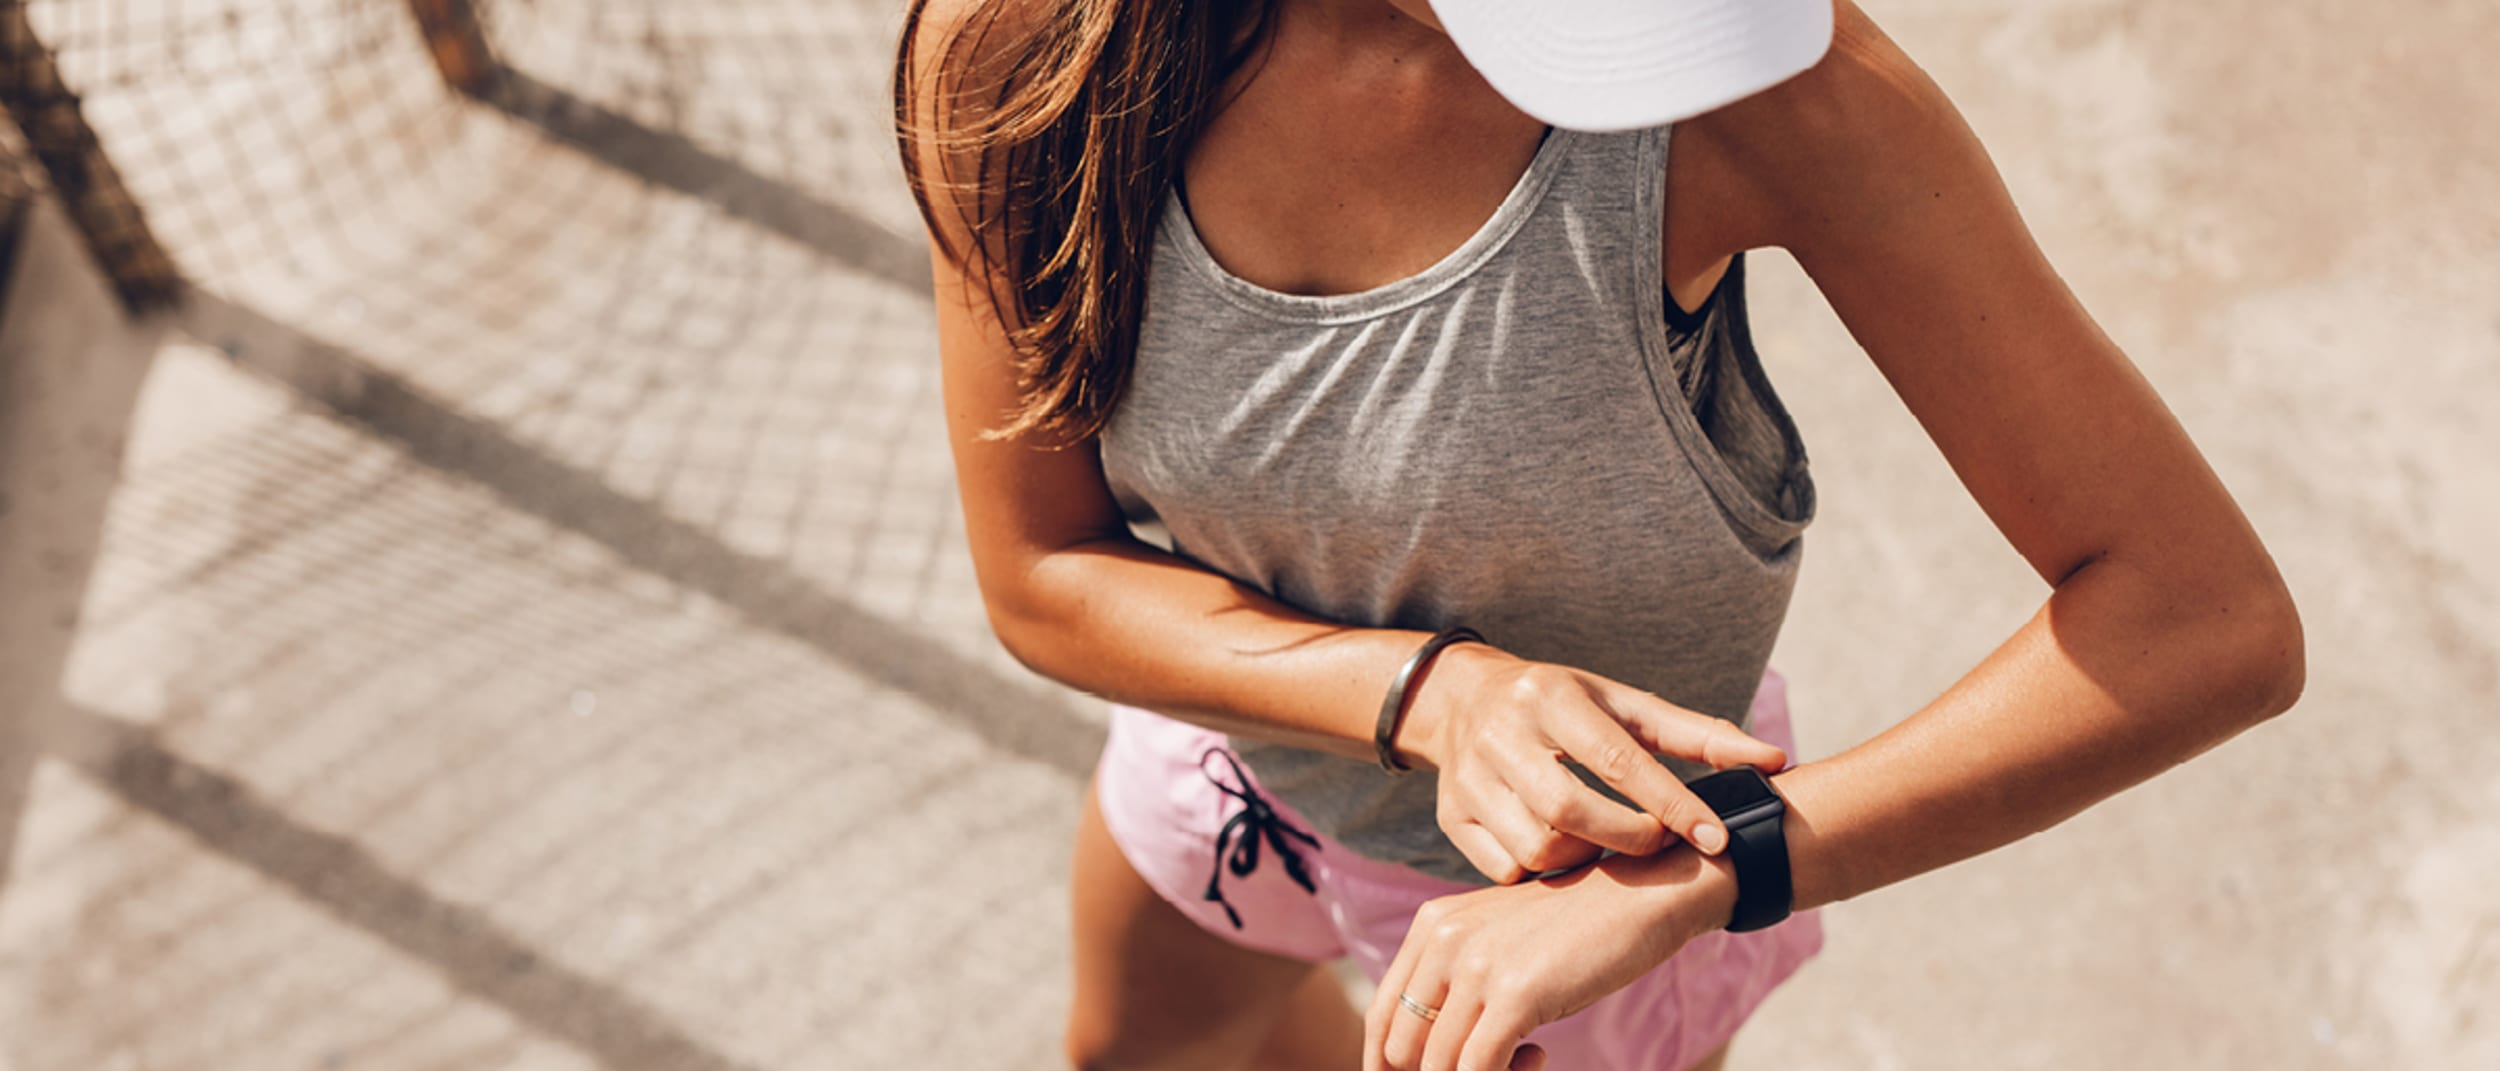 Will a fitness tracker actually help me smash goals?